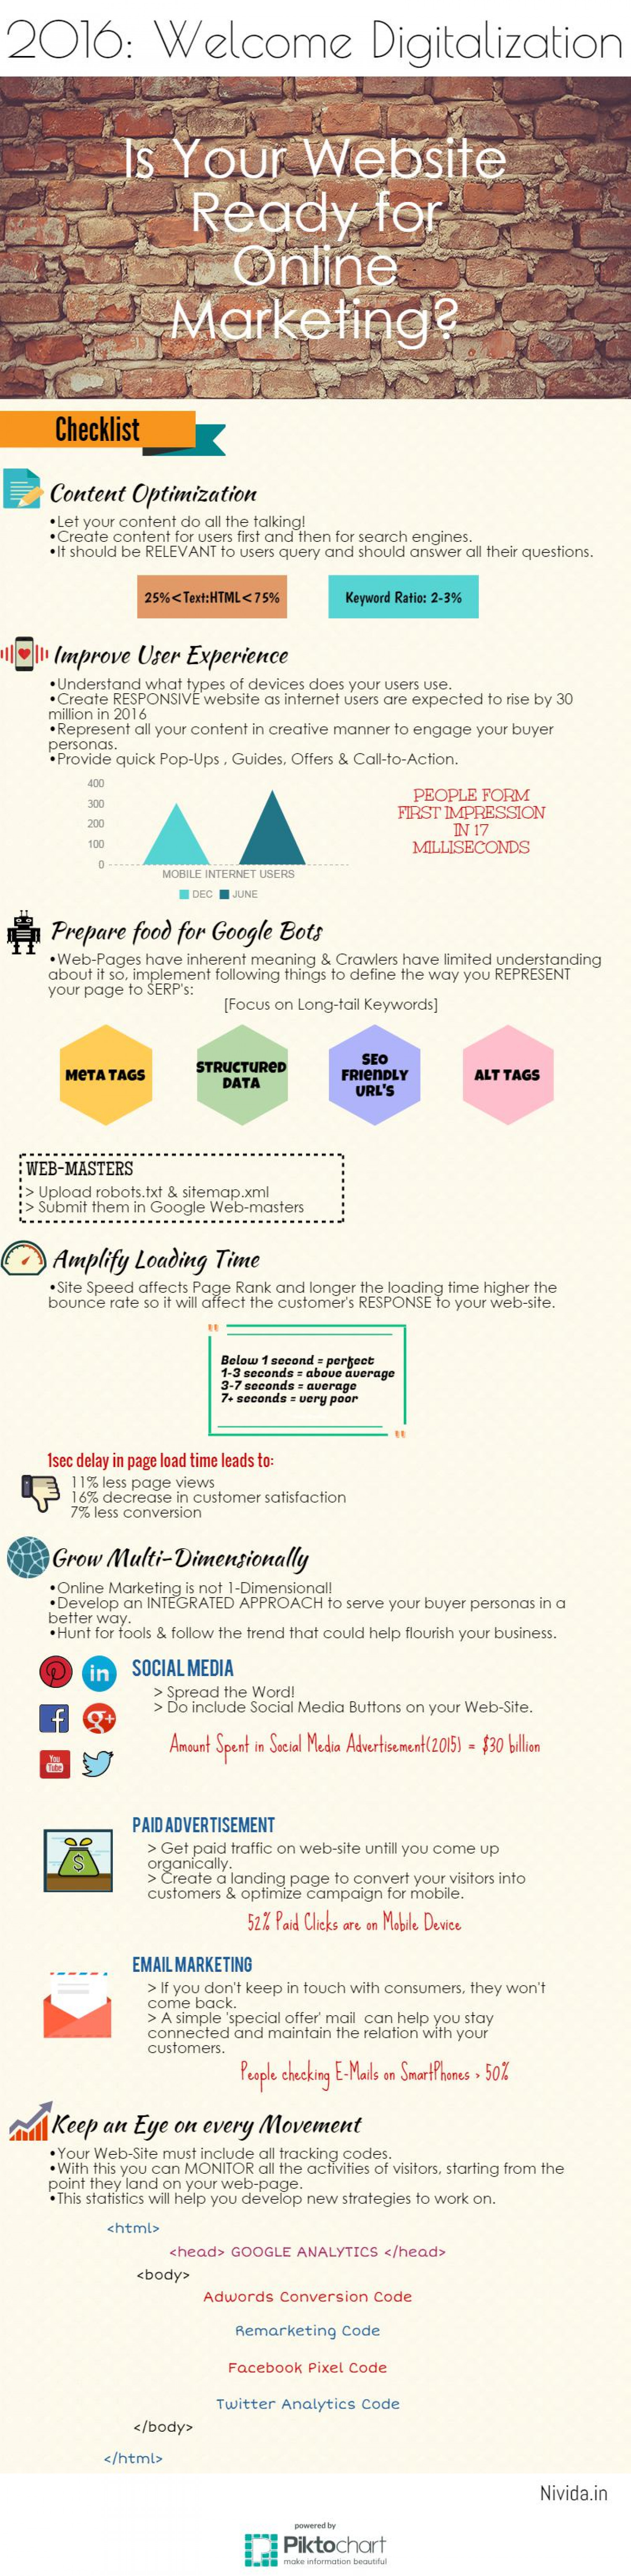 How to make your website ready for online marketing? Infographic